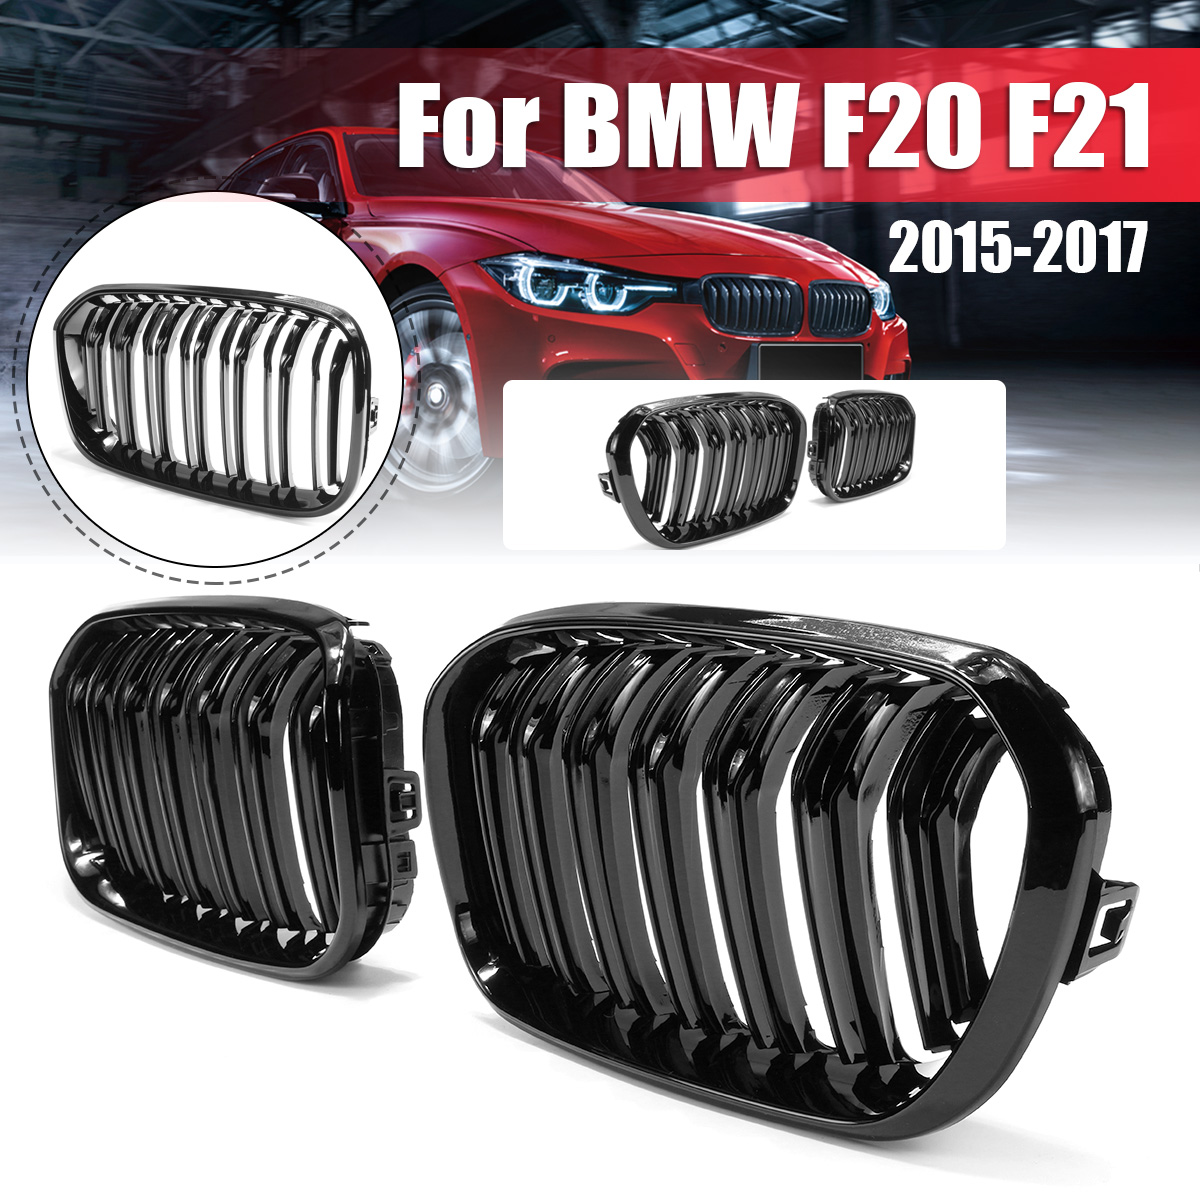 For BMW F20 F21 1 Series 2015 2016 2017 Pair Gloss Matt Black Double Slat Line M Color Front Racing Grill Kidney Grill Grille цена 2017